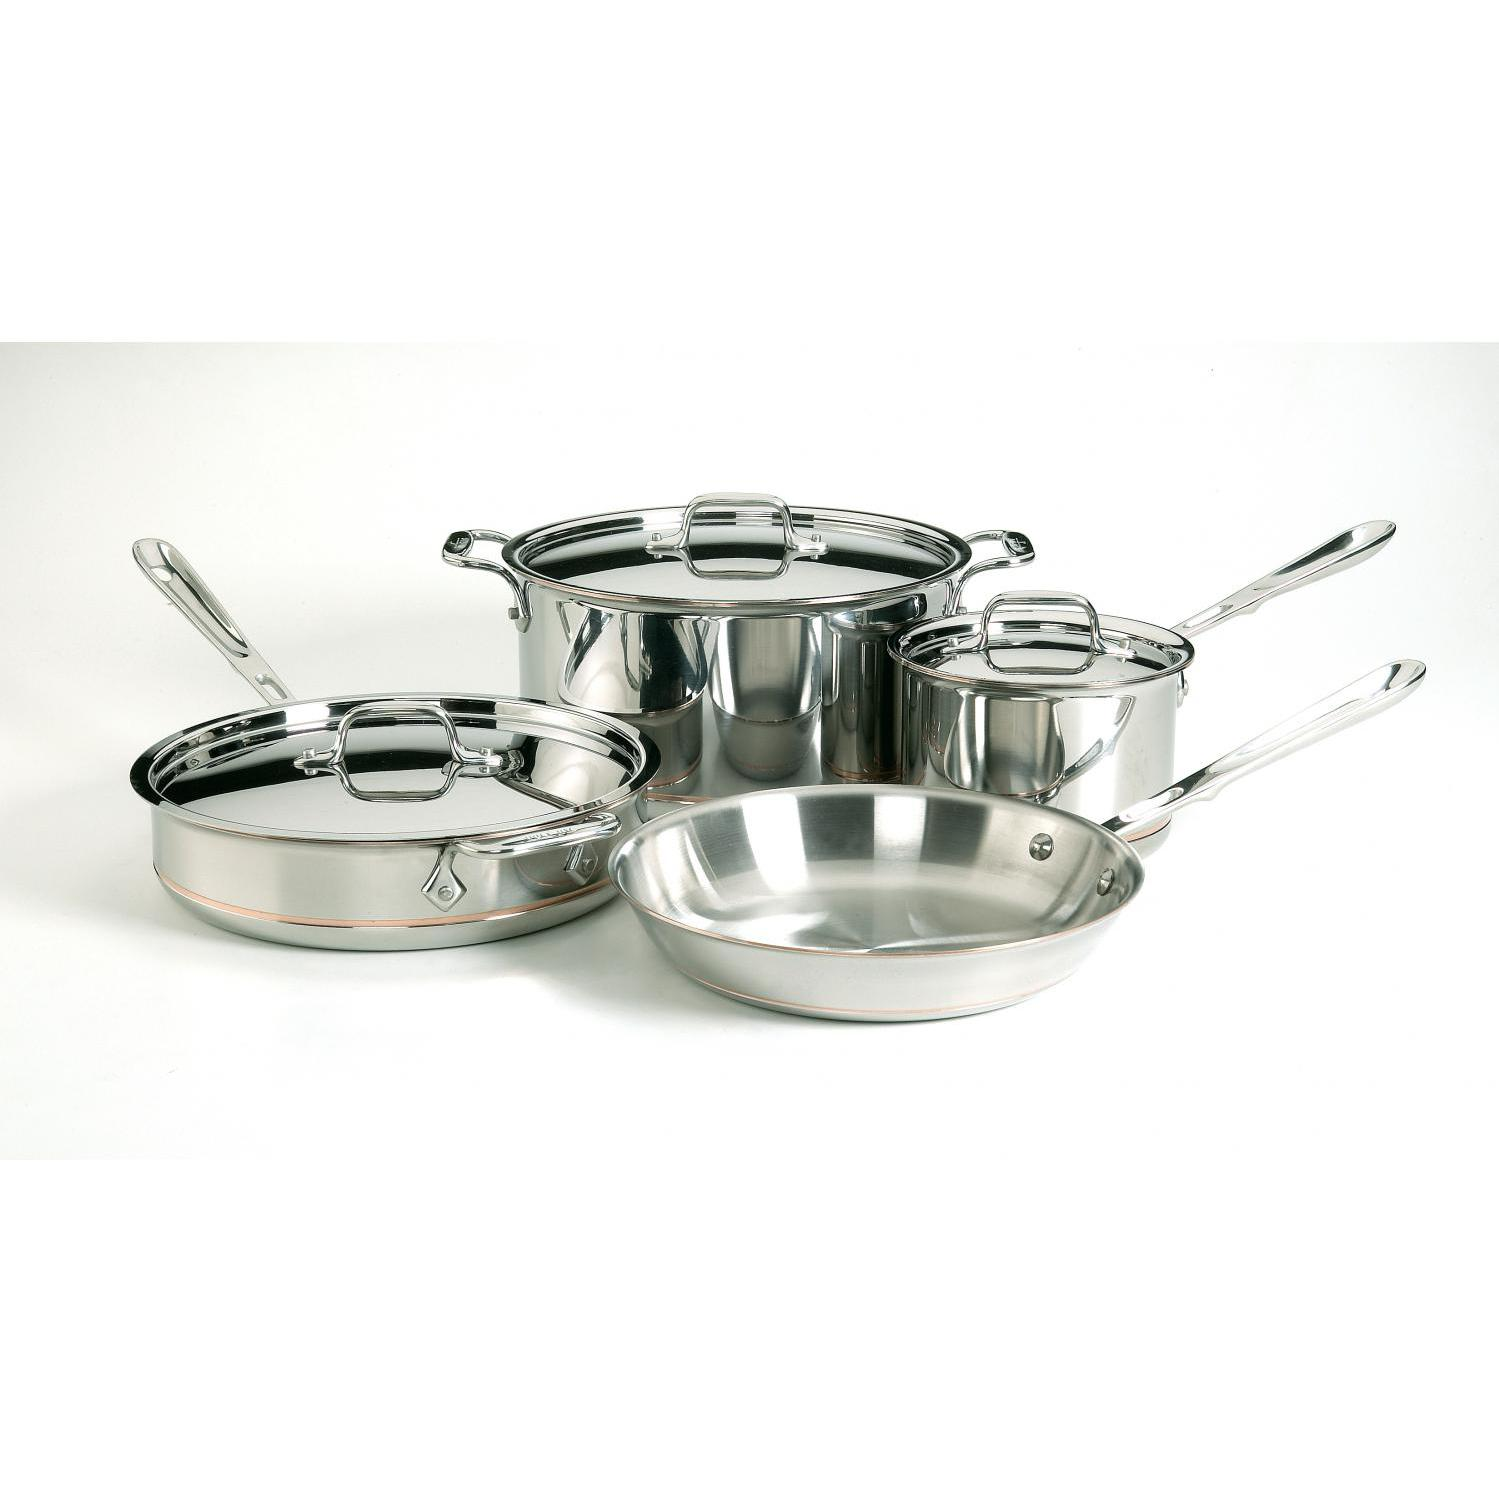 Picture of All-Clad Copper-Core Stainless Steel 7-Piece Cookware Set